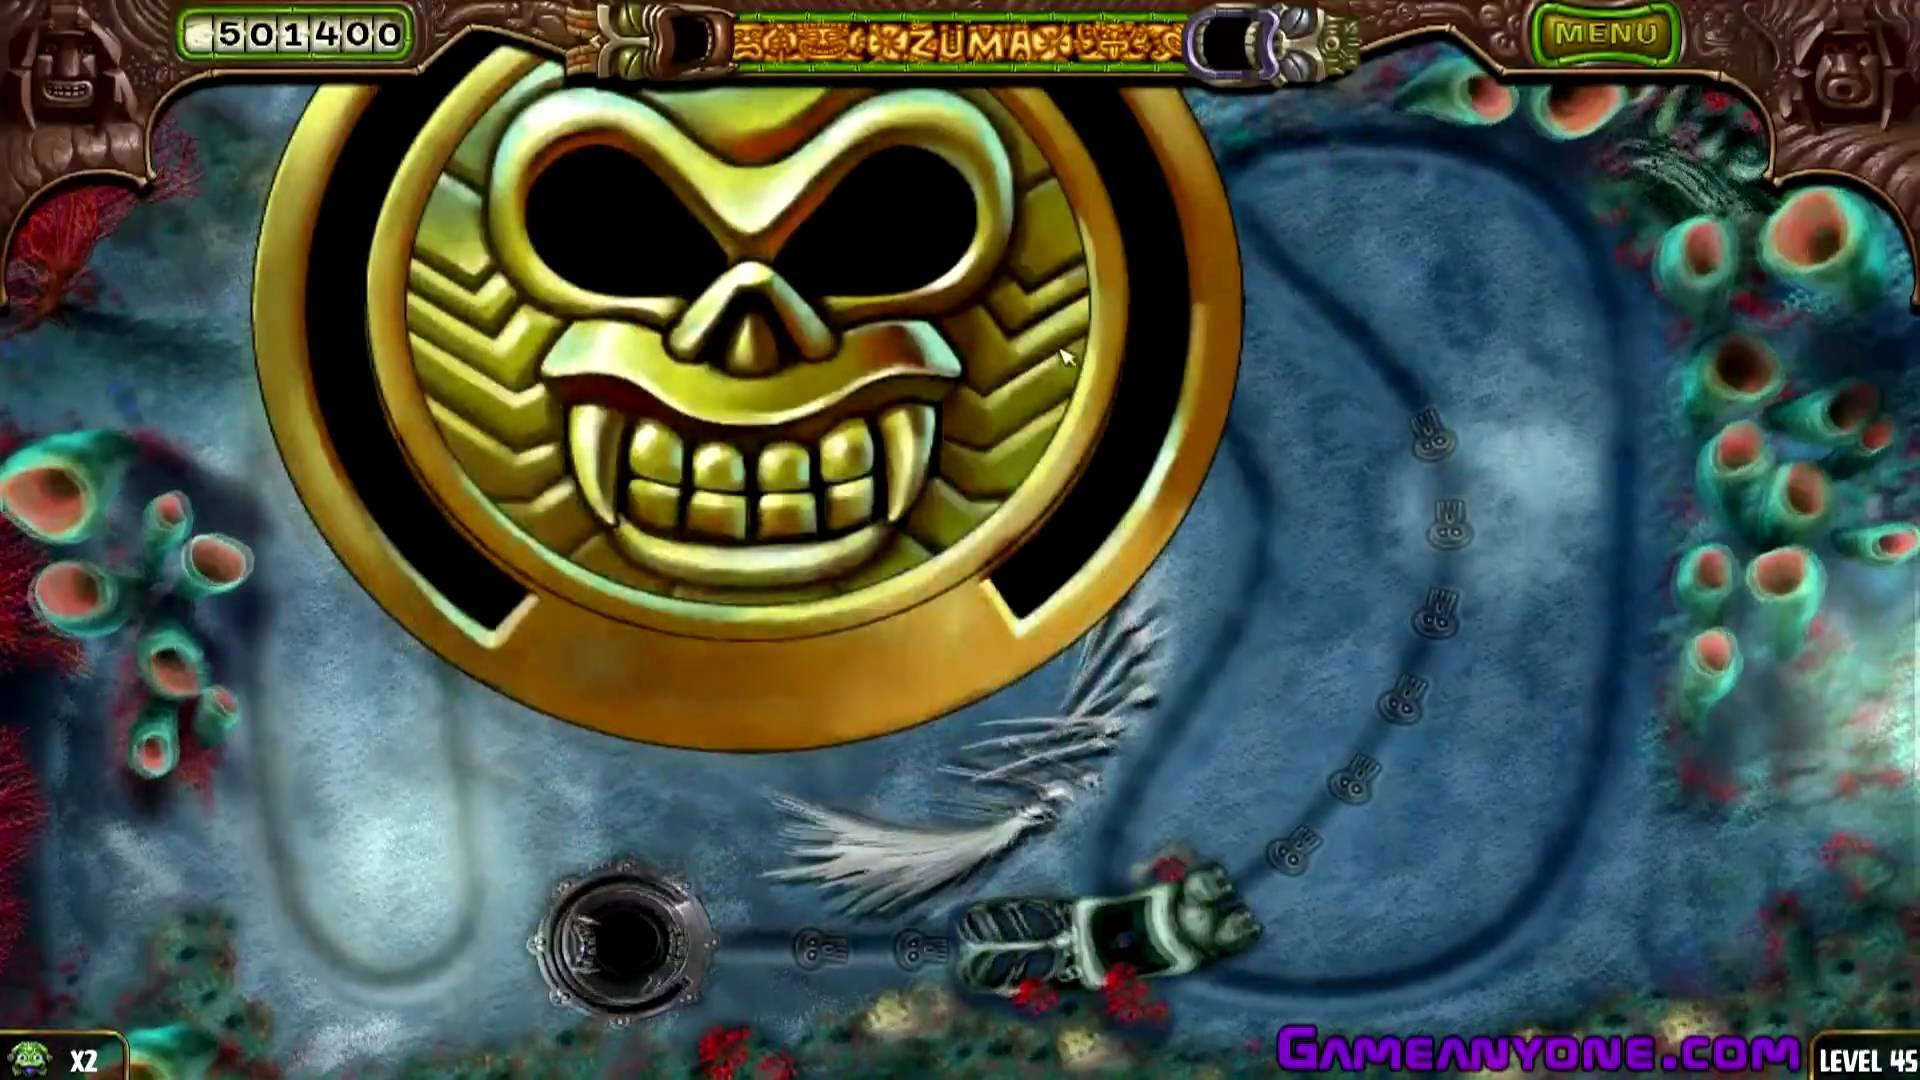 Zuma's Revenge wallpapers, Video Game, HQ Zuma's Revenge pictures